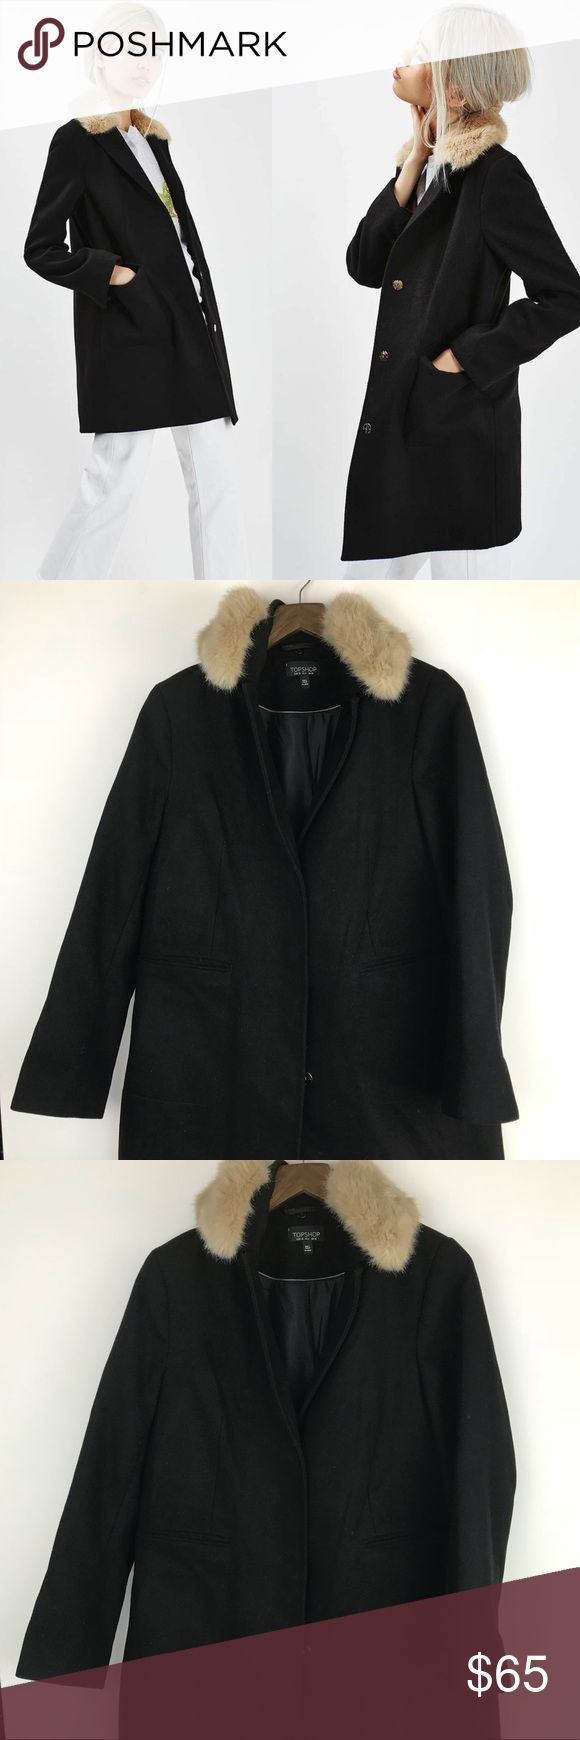 """NWOT Topshop Fur Collar Coat Brand new without tags.  Approximate measurements: Bust - 19"""" across  Length 30""""  94% Polyester//4% Viscose//1% elastane     🏷TOP-20-11102017 Topshop Jackets & Coats"""